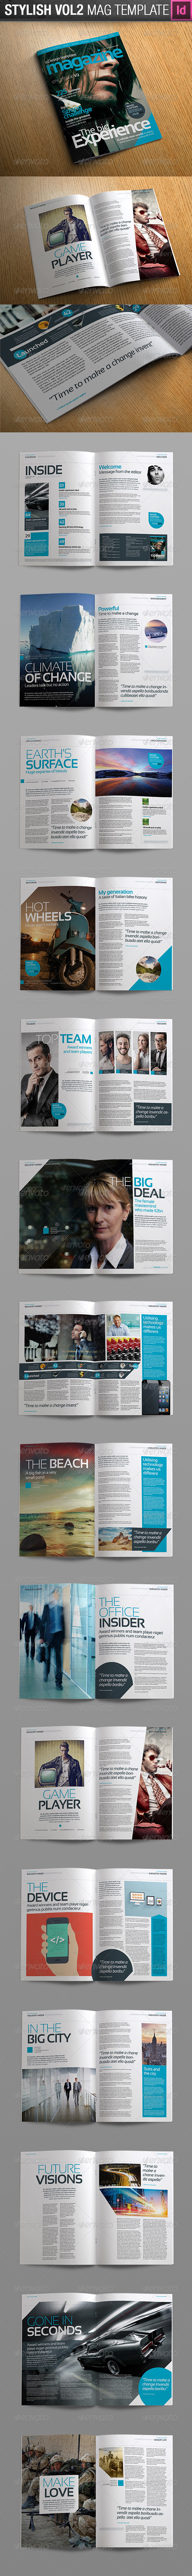 Stylish Volume 2 InDesign Magazine Template - Magazines Print ...